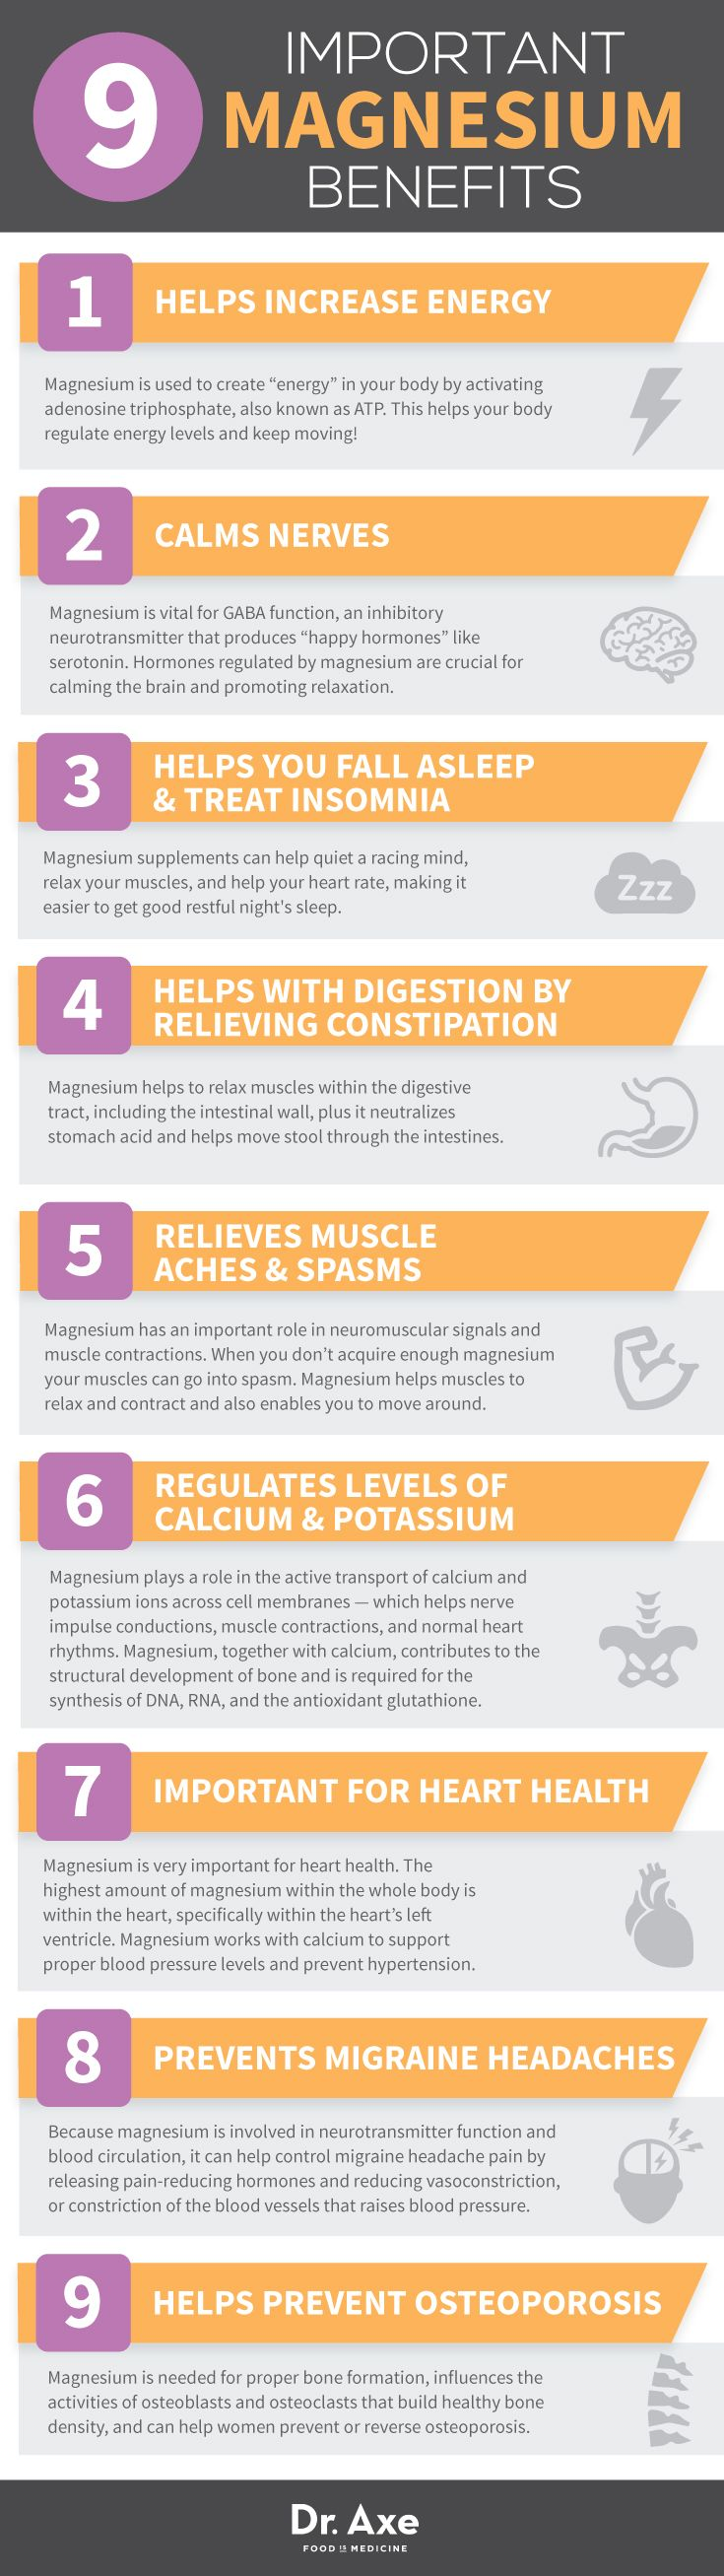 Magnesium Benefits  Dosing: Infants–6 months: 30 mg 7–12 months: 75 mg 1–3 years: 80 mg 4–8 years: 130 mg 9–13 years: 240 mg 14–18 years: 410 mg for men; 360 mg for women 19–30 years: 400 mg for men; 310 mg for women  Adults 31 years and older: 420 mg for men; 320 mg for women  Pregnant women: 350-360 mg  Women who are breastfeeding: 310-320 mg